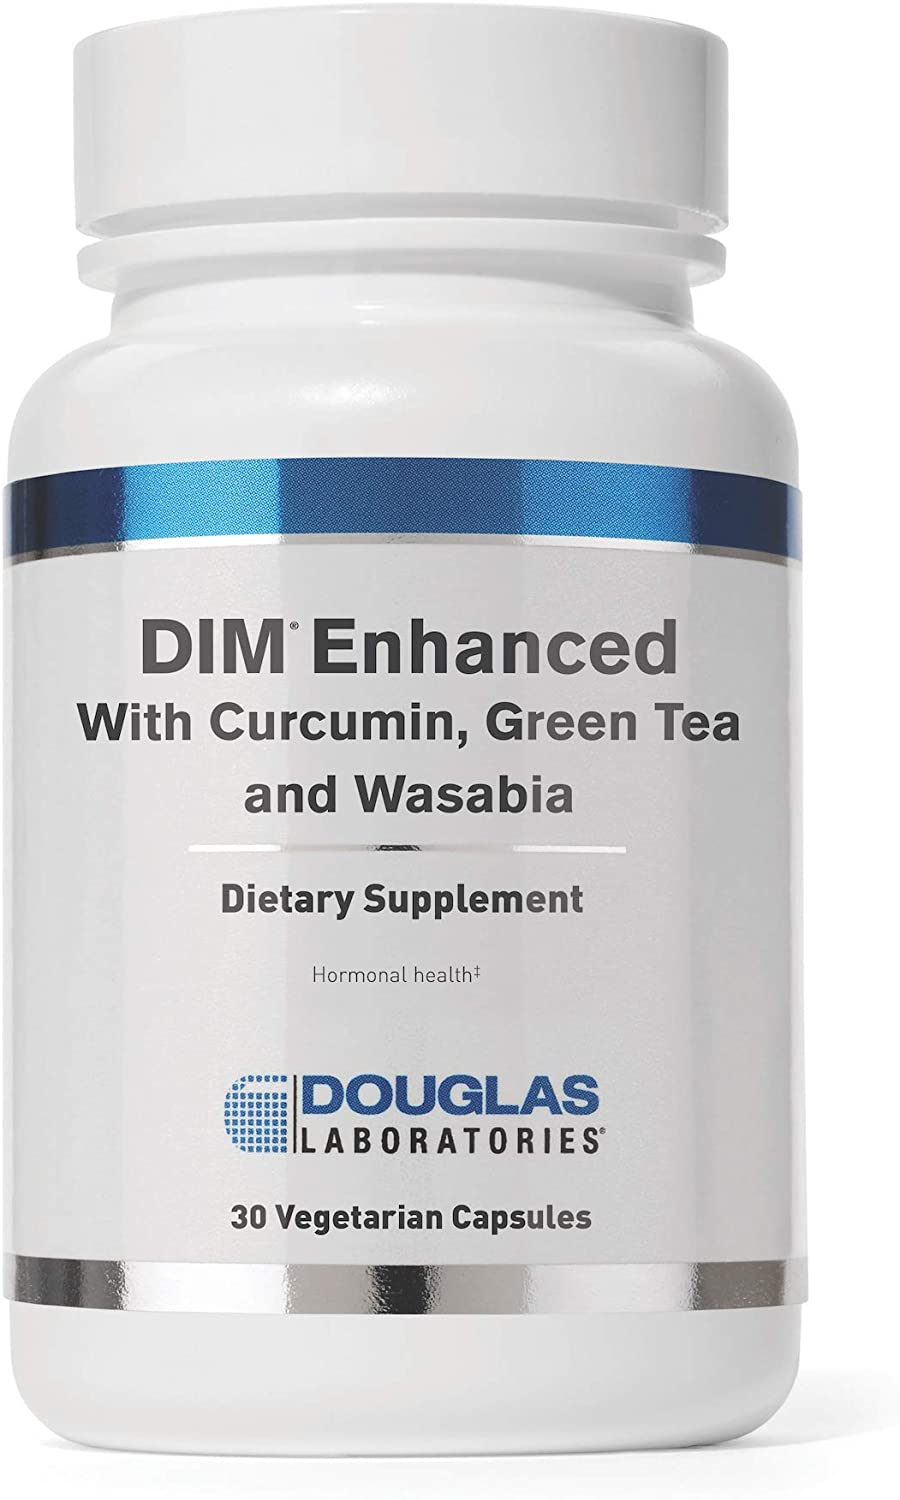 Douglas Laboratories – DIM Enhanced – with Curcumin, Green Tea, and Wasabia to Support Healthy Estrogen Hormone Balance and Immune Health* – 30 Capsules